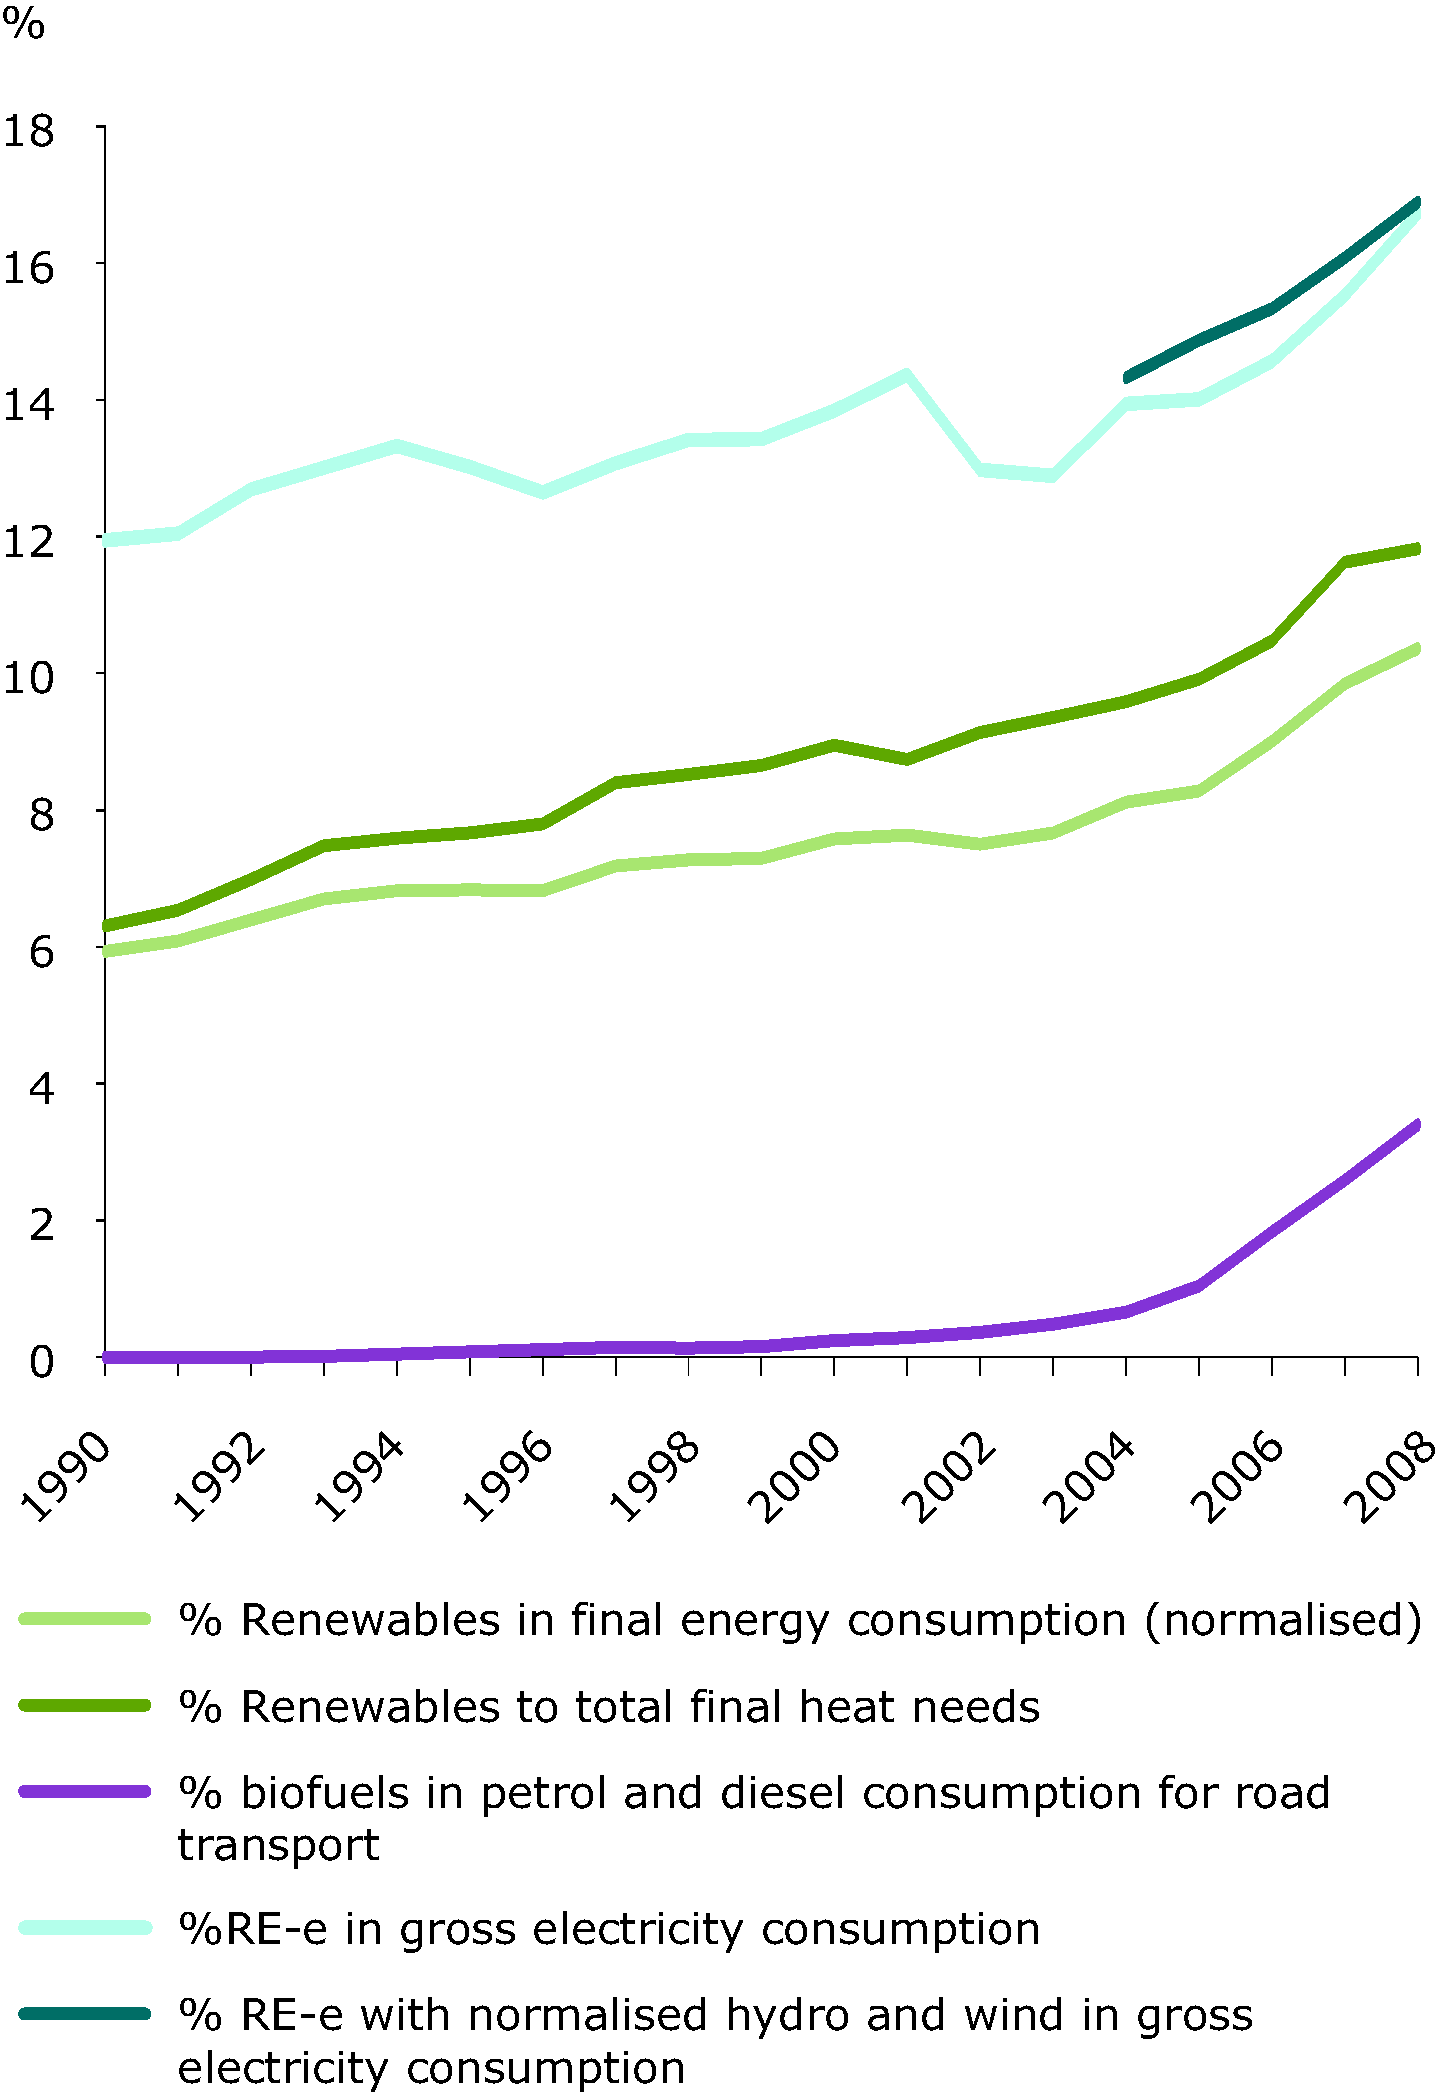 Share of renewable energy to final energy consumption, 1993-2008